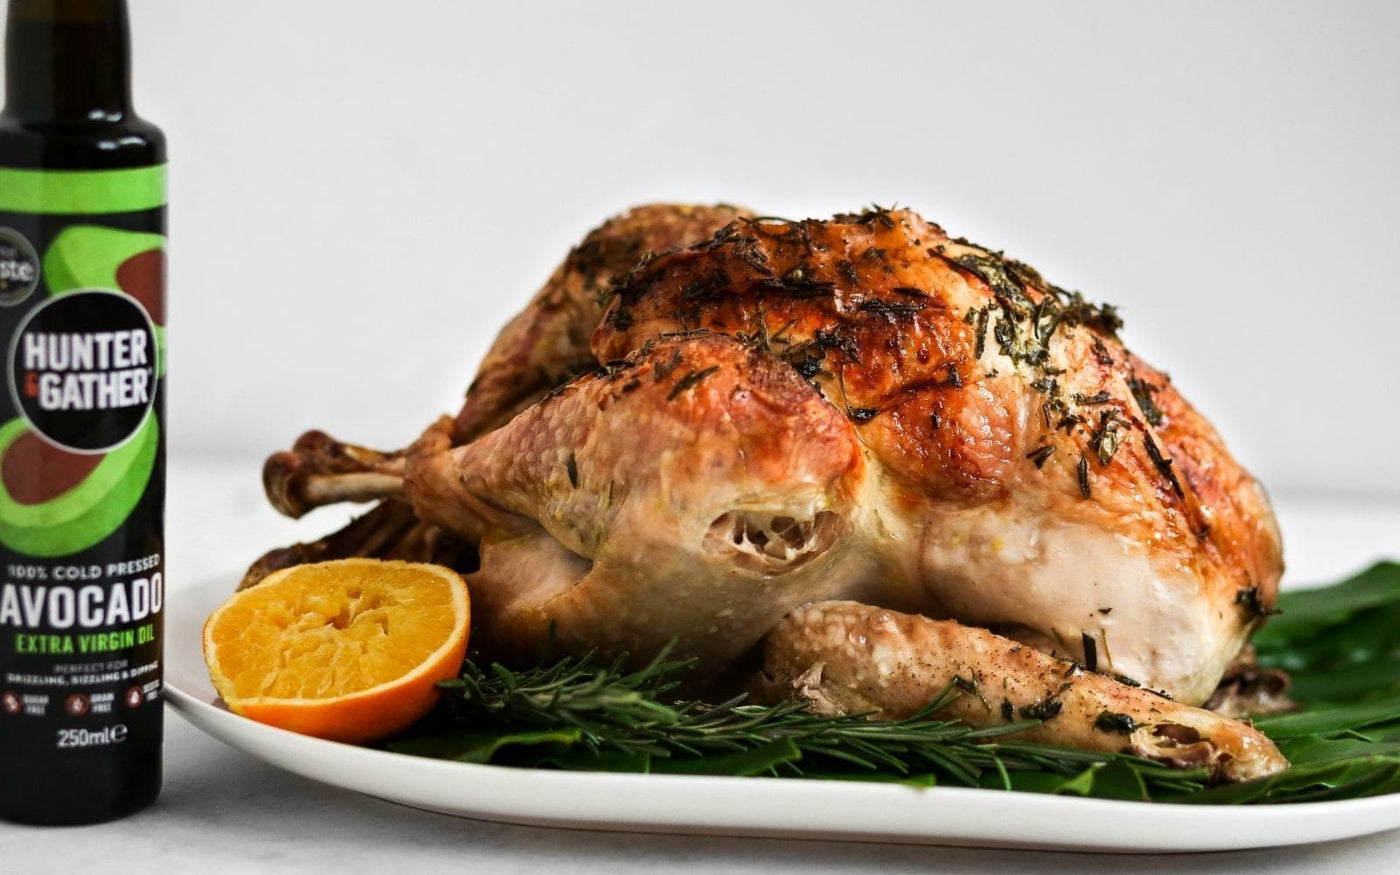 Herb Roasted Turkey Recipe with Avocado Oil